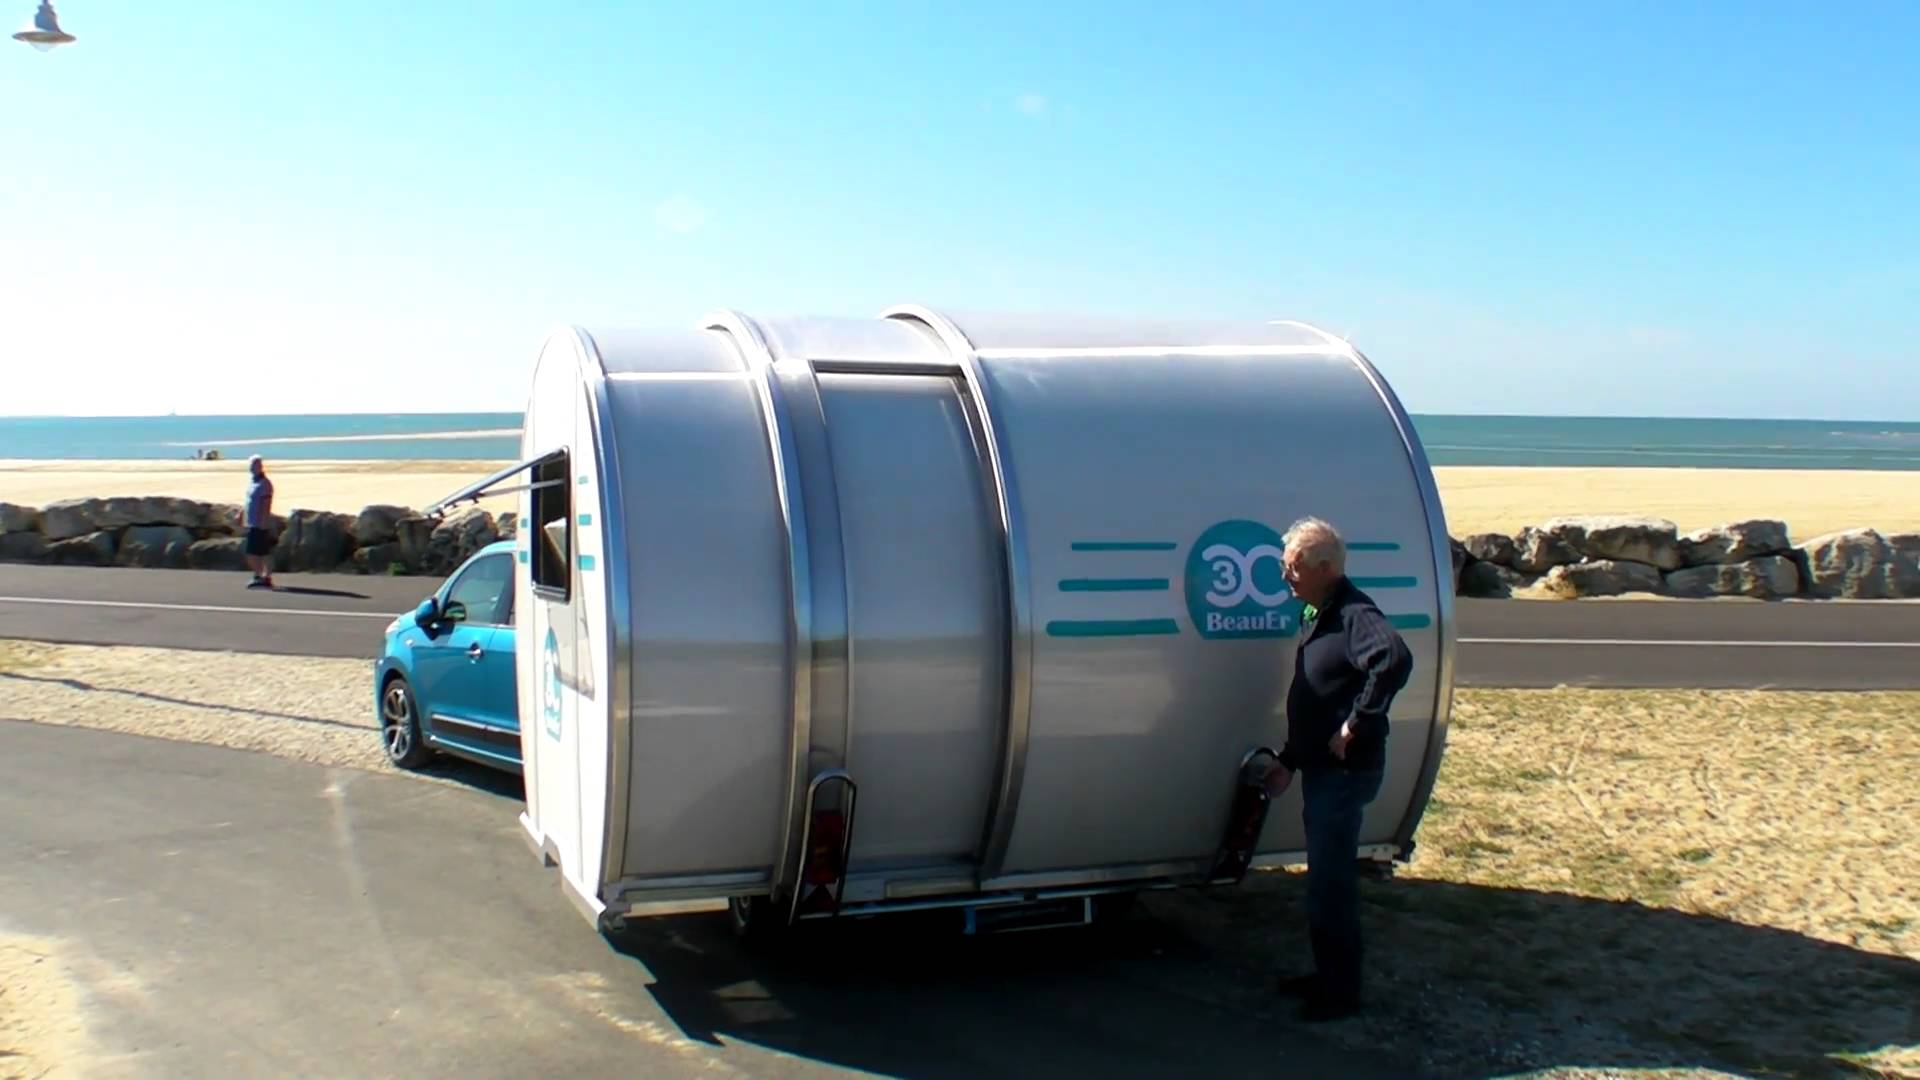 Camping Trailers Expandable With Model Inspirational In Canada